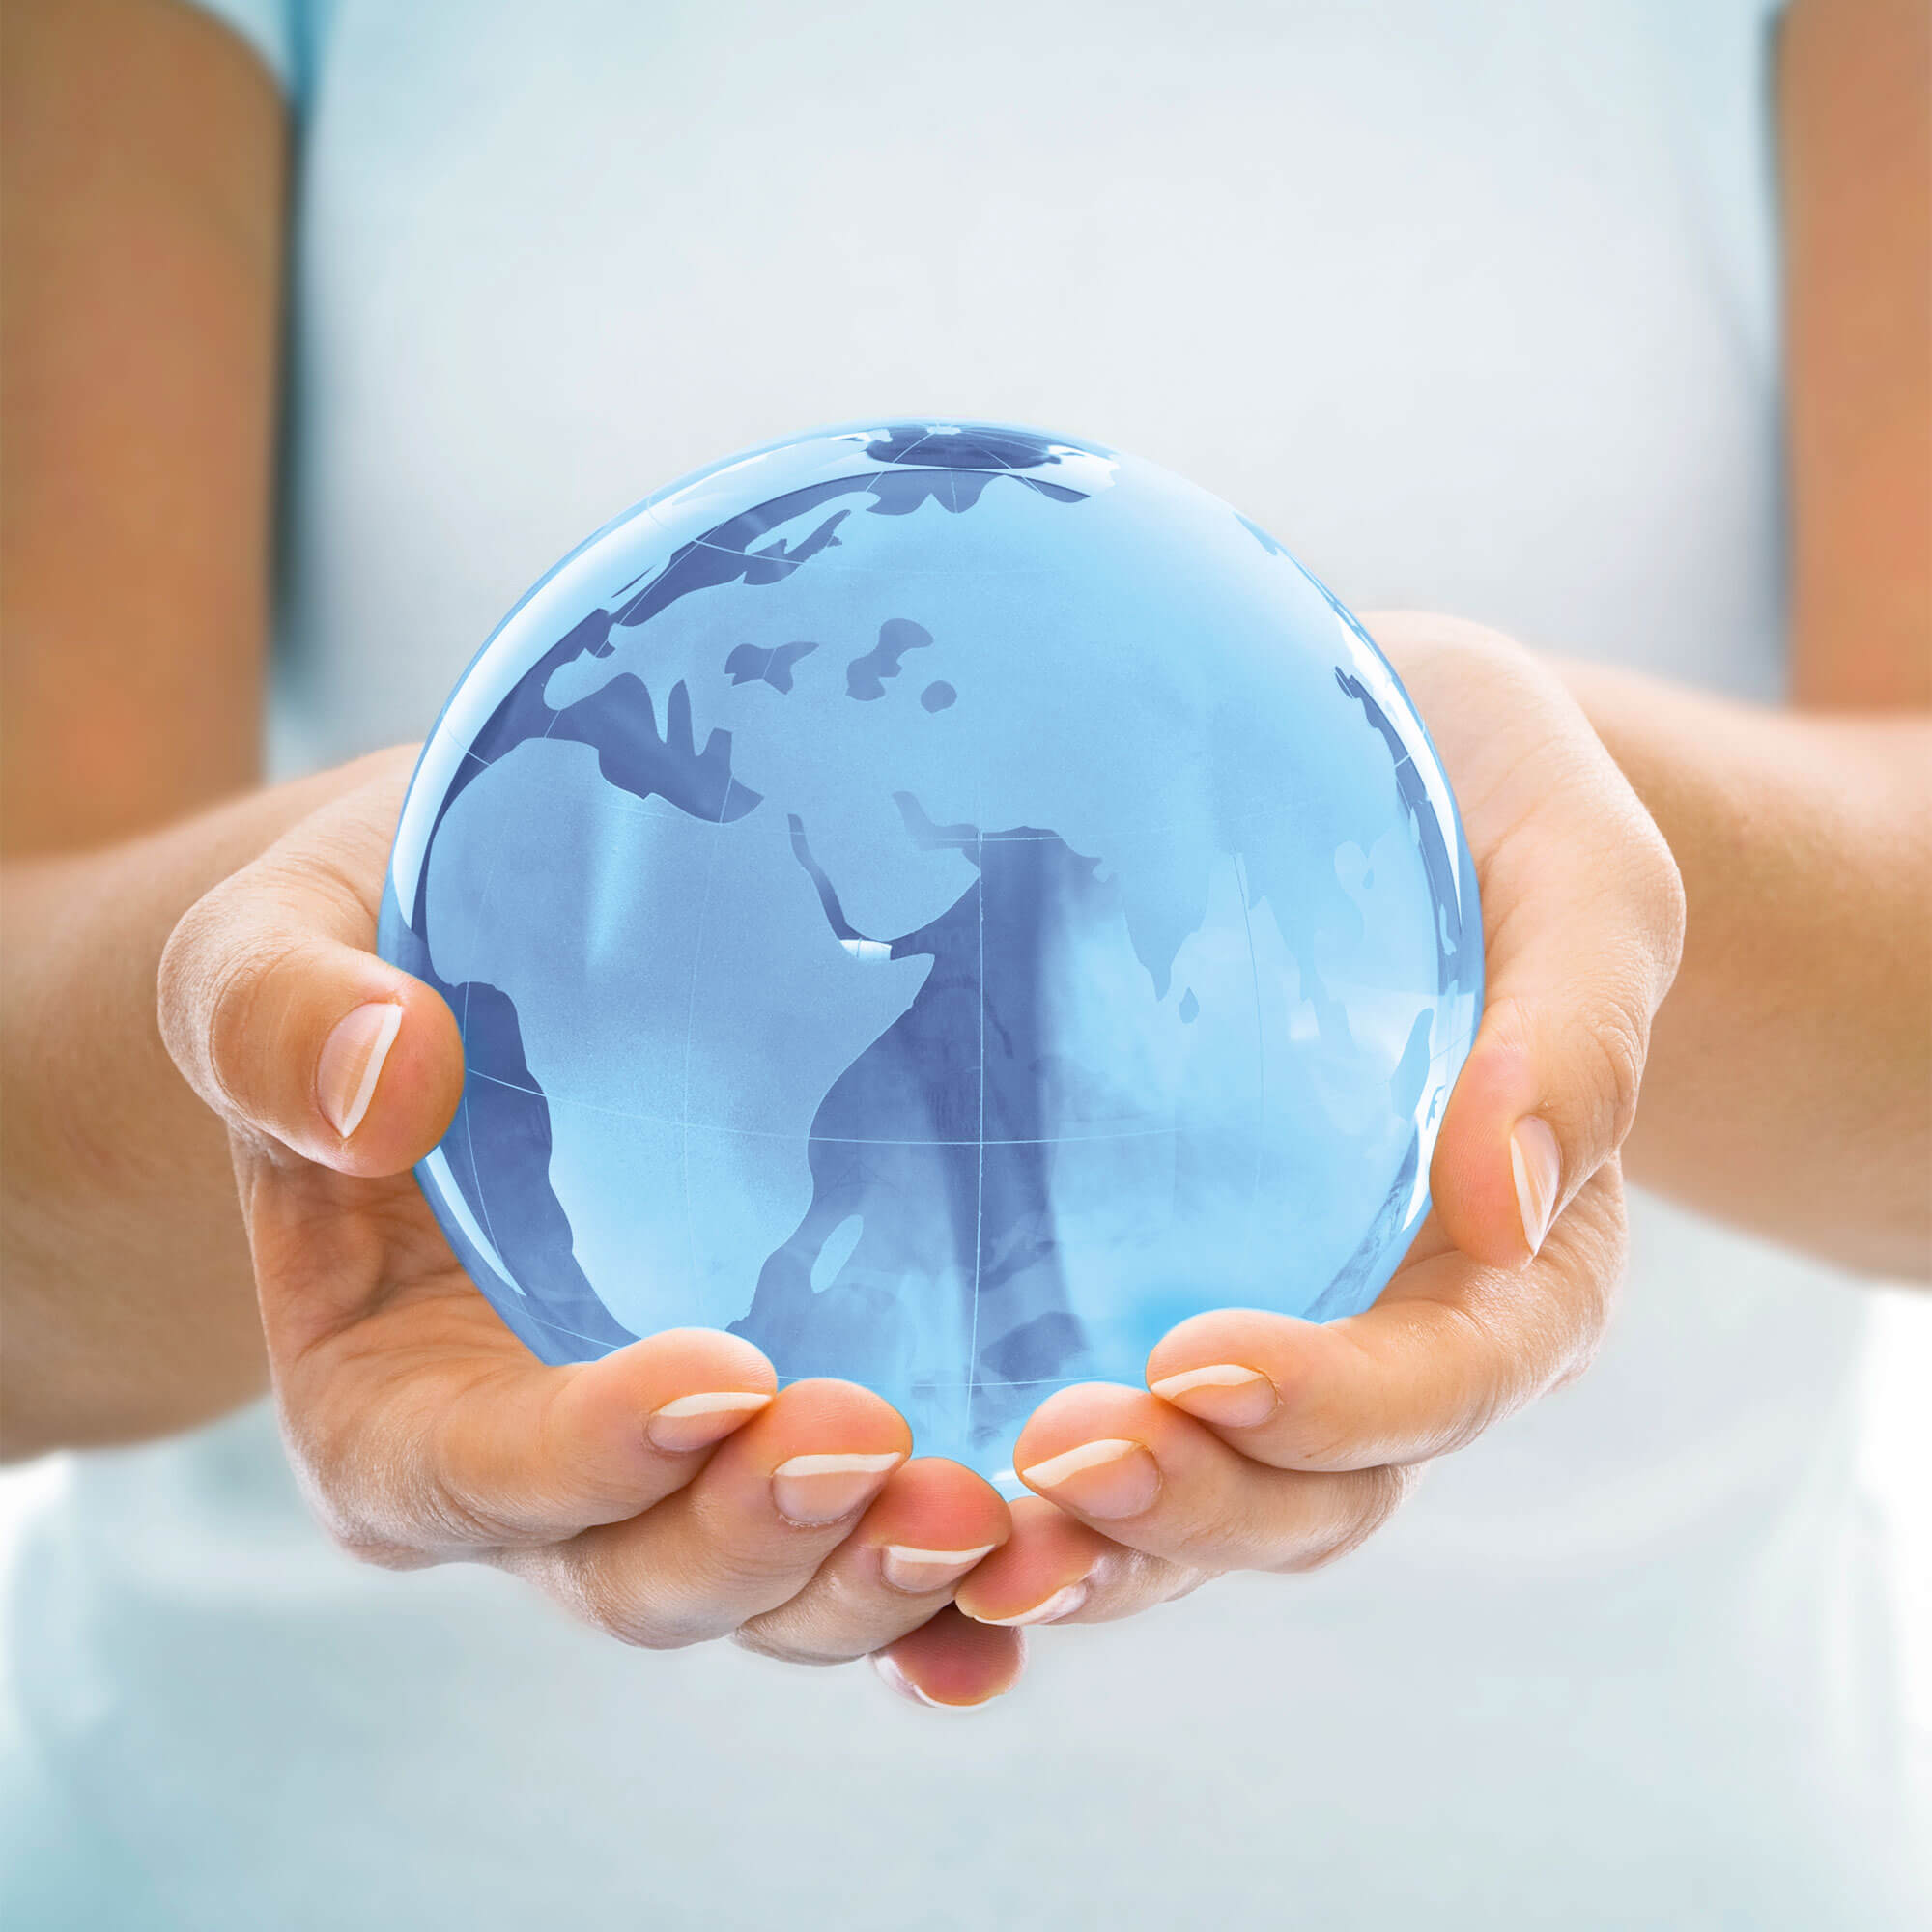 Person holding a blue glass globe in hands.